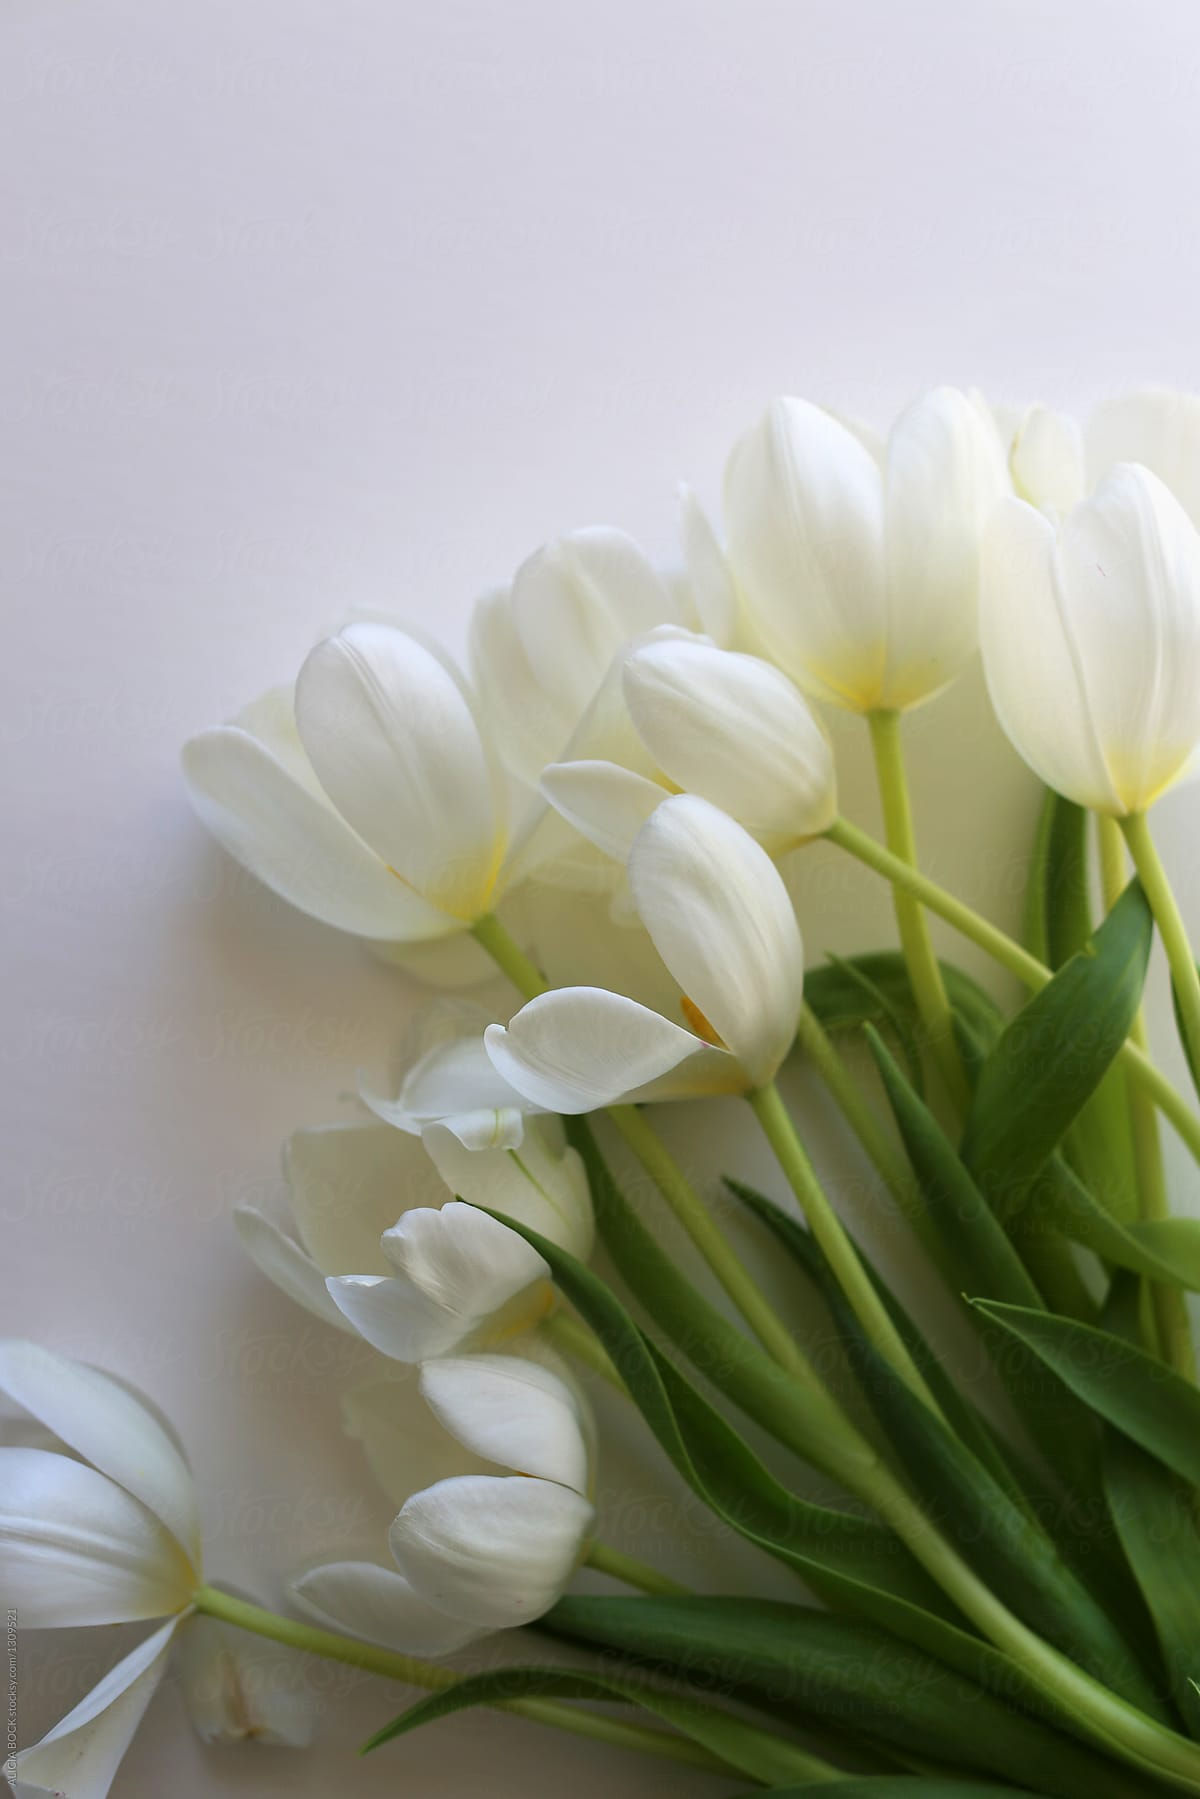 A Collection Of Fresh White Tulip Flowers Stocksy United